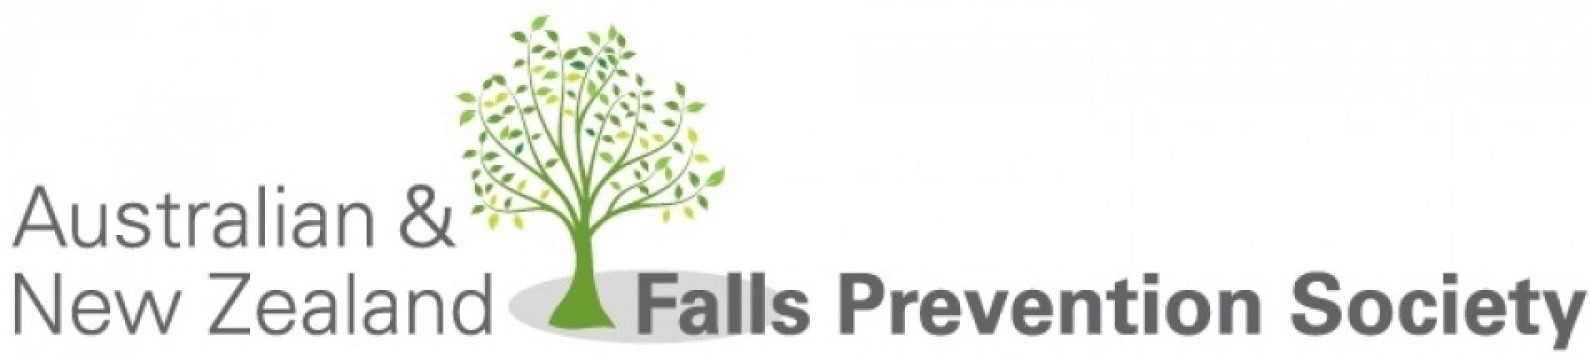 Australian and New Zealand Falls Prevention Society